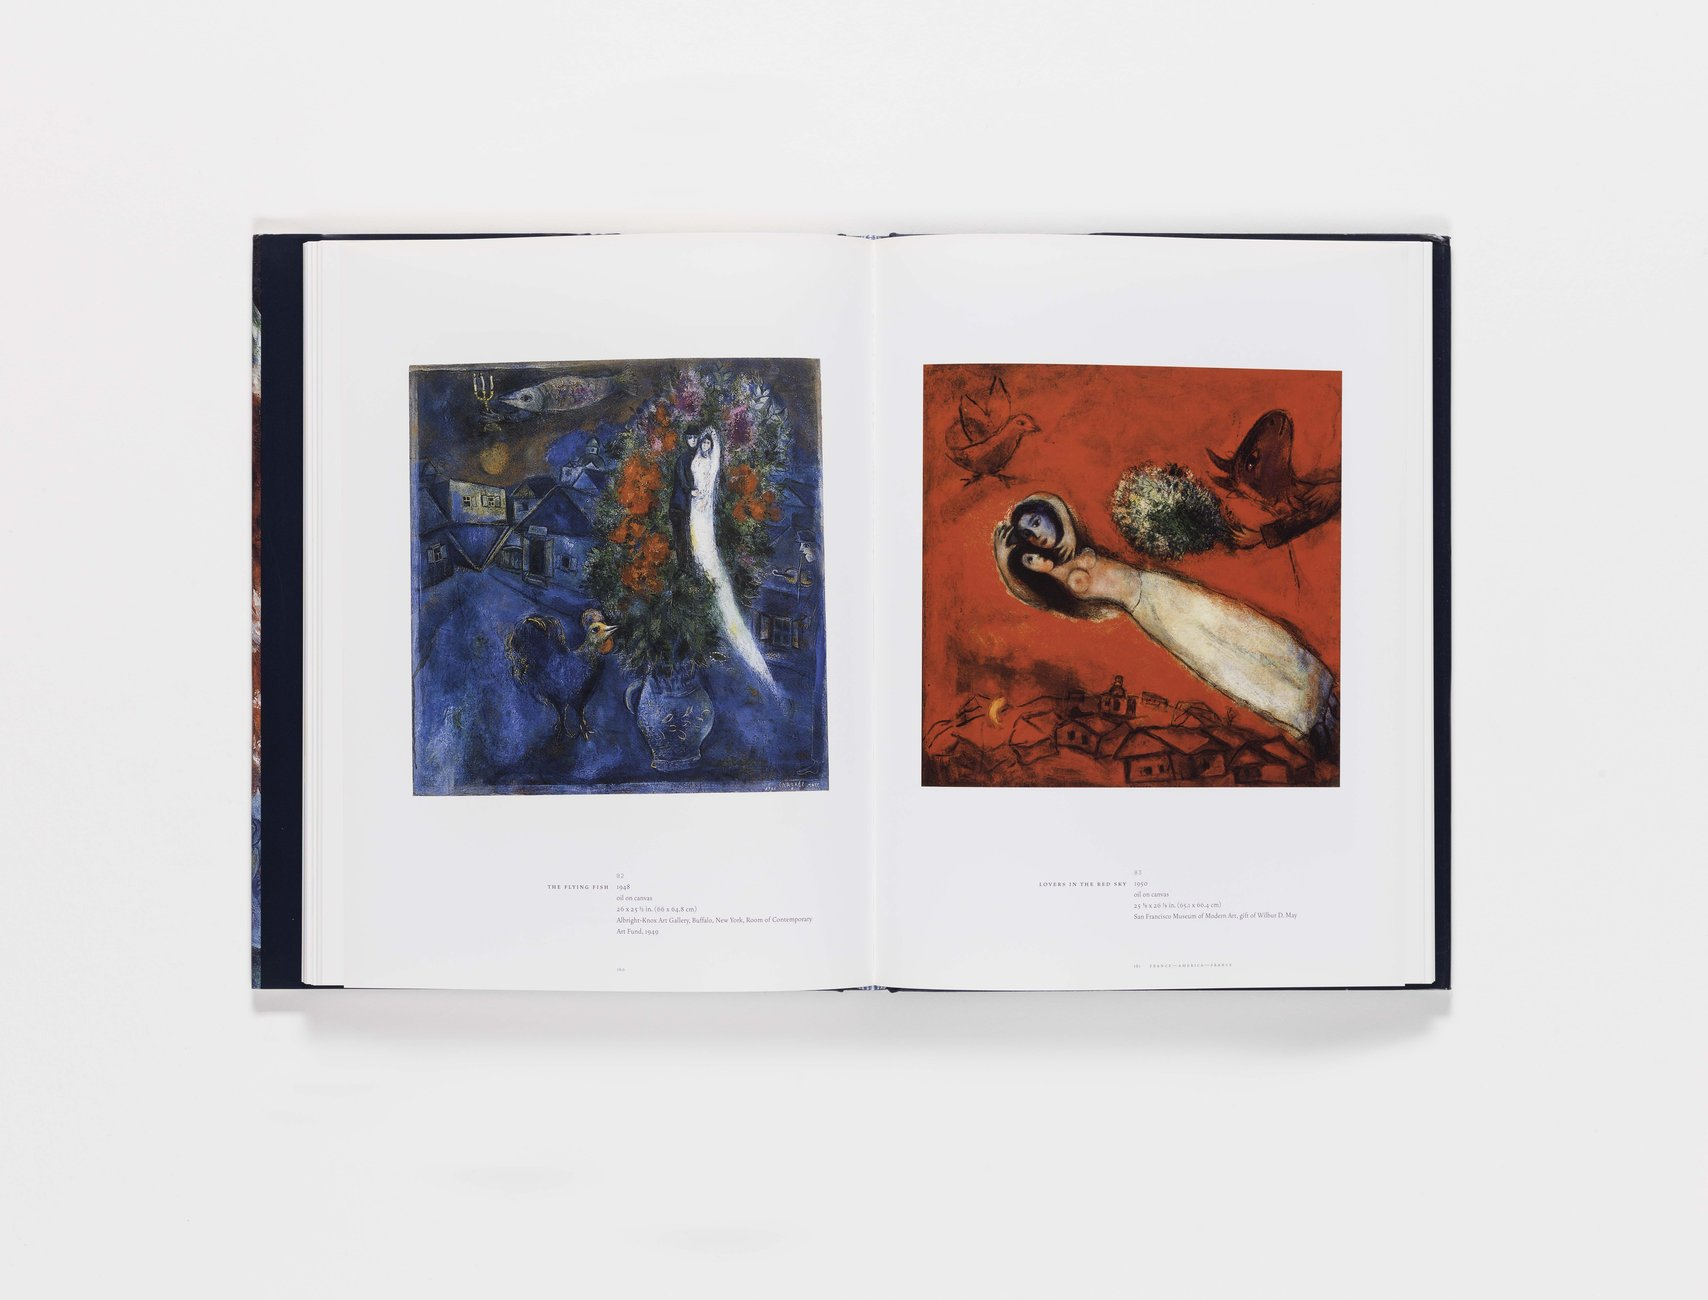 Marc Chagall publication pages 160-161